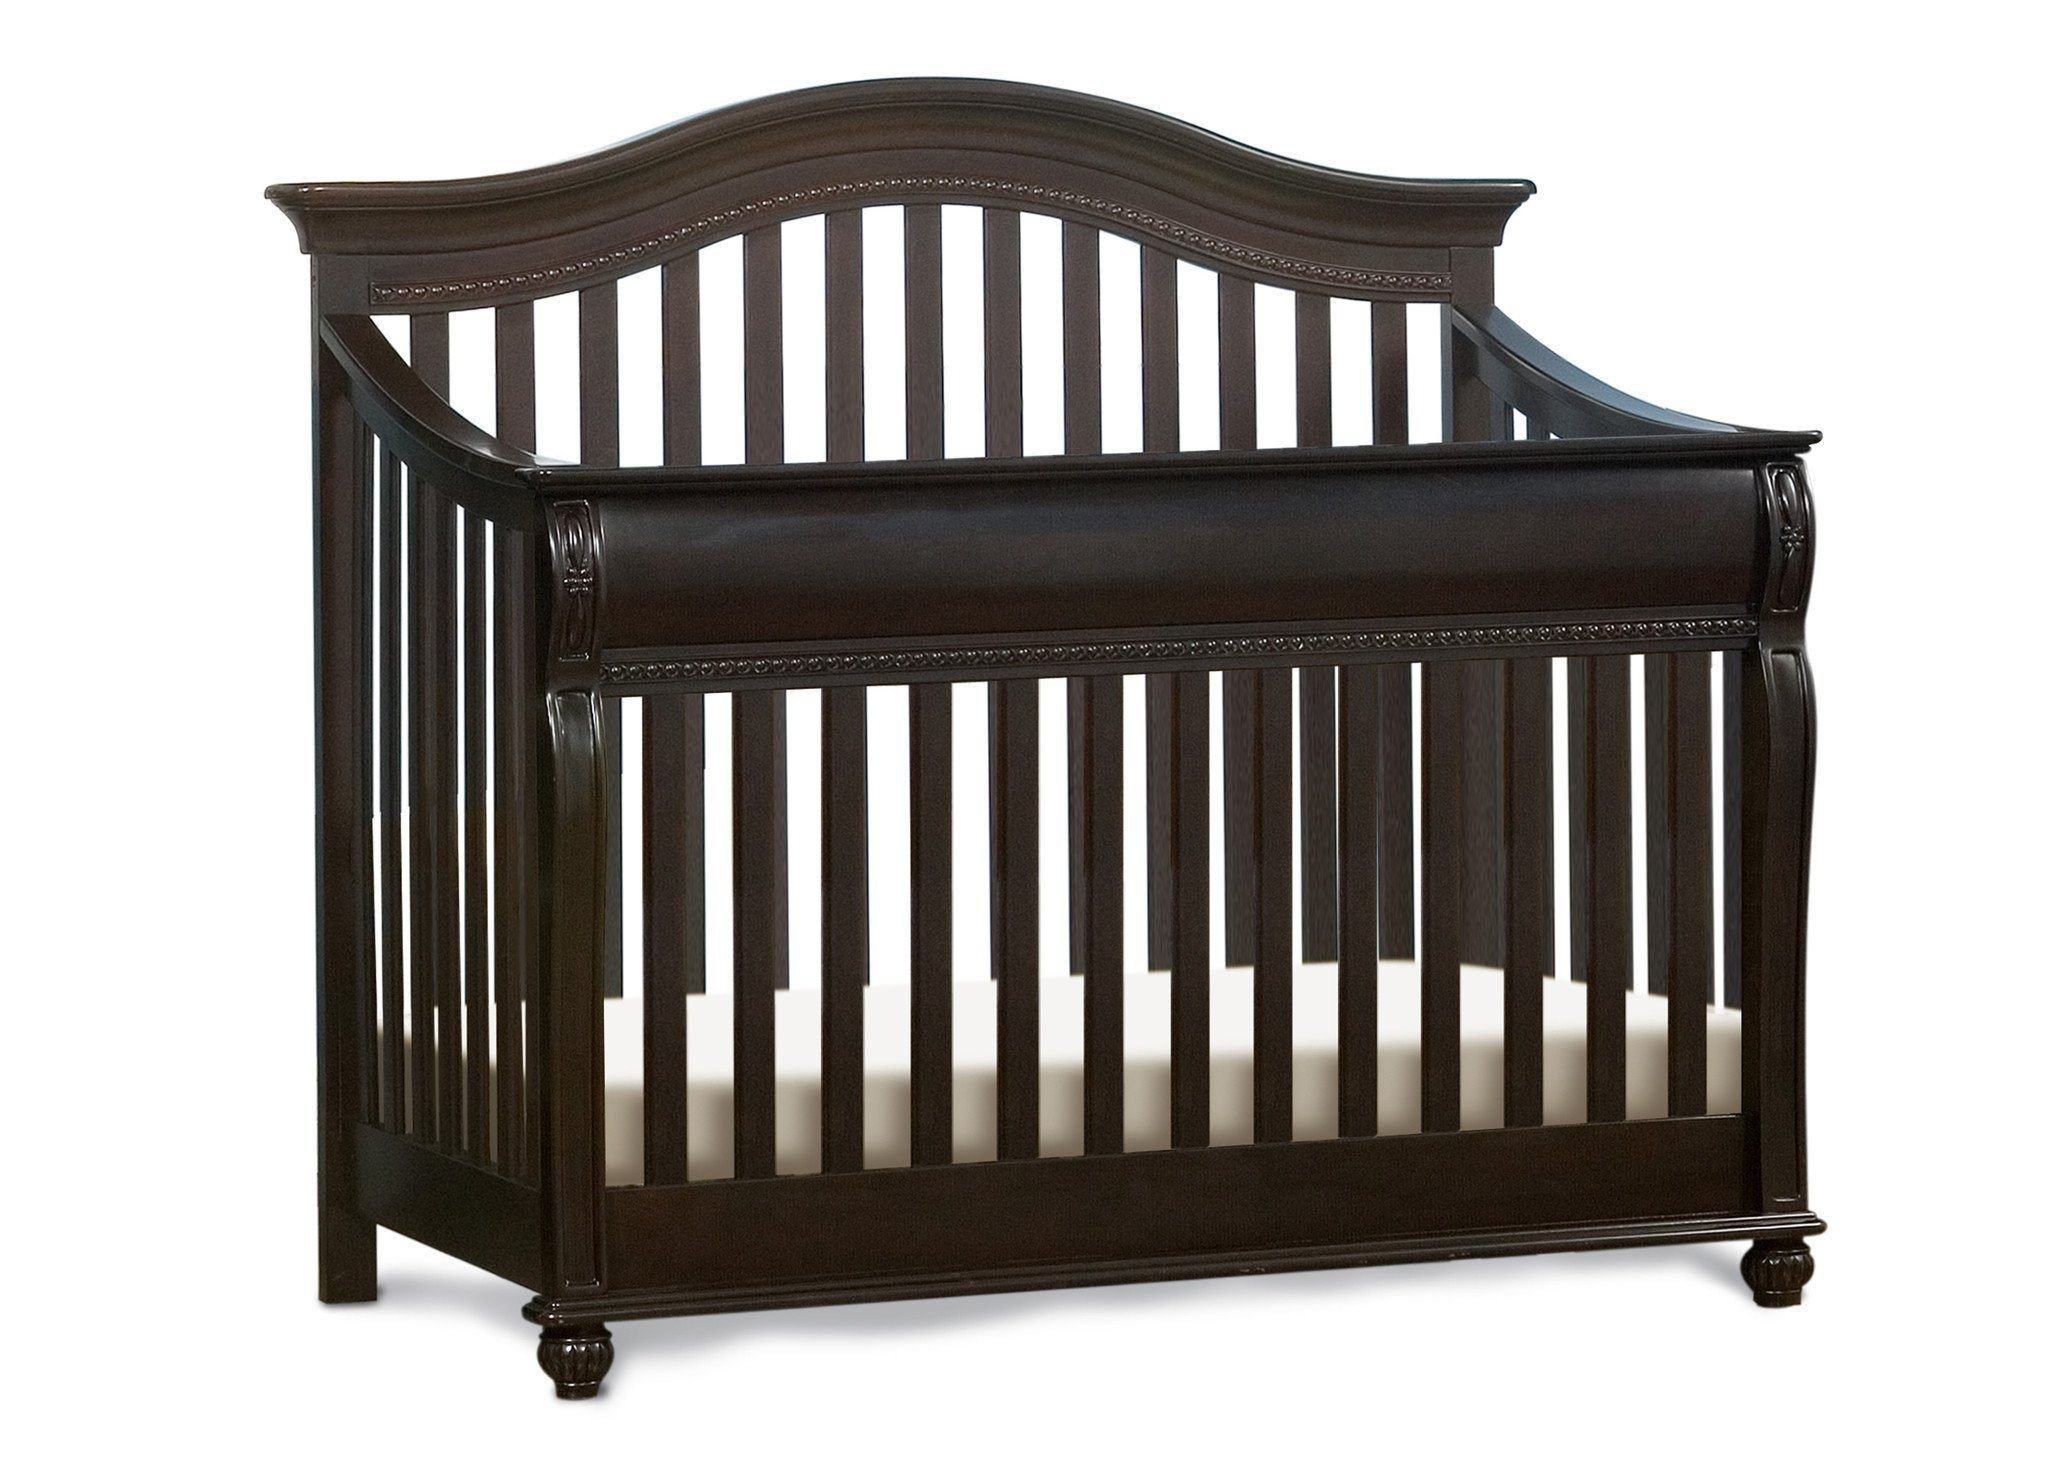 Full Size Conversion Kit Bed Rails for Simmons/Delta Childrens Vancouver Crib-N-More Crib - Labrosse Cherry by CC KITS (Image #3)